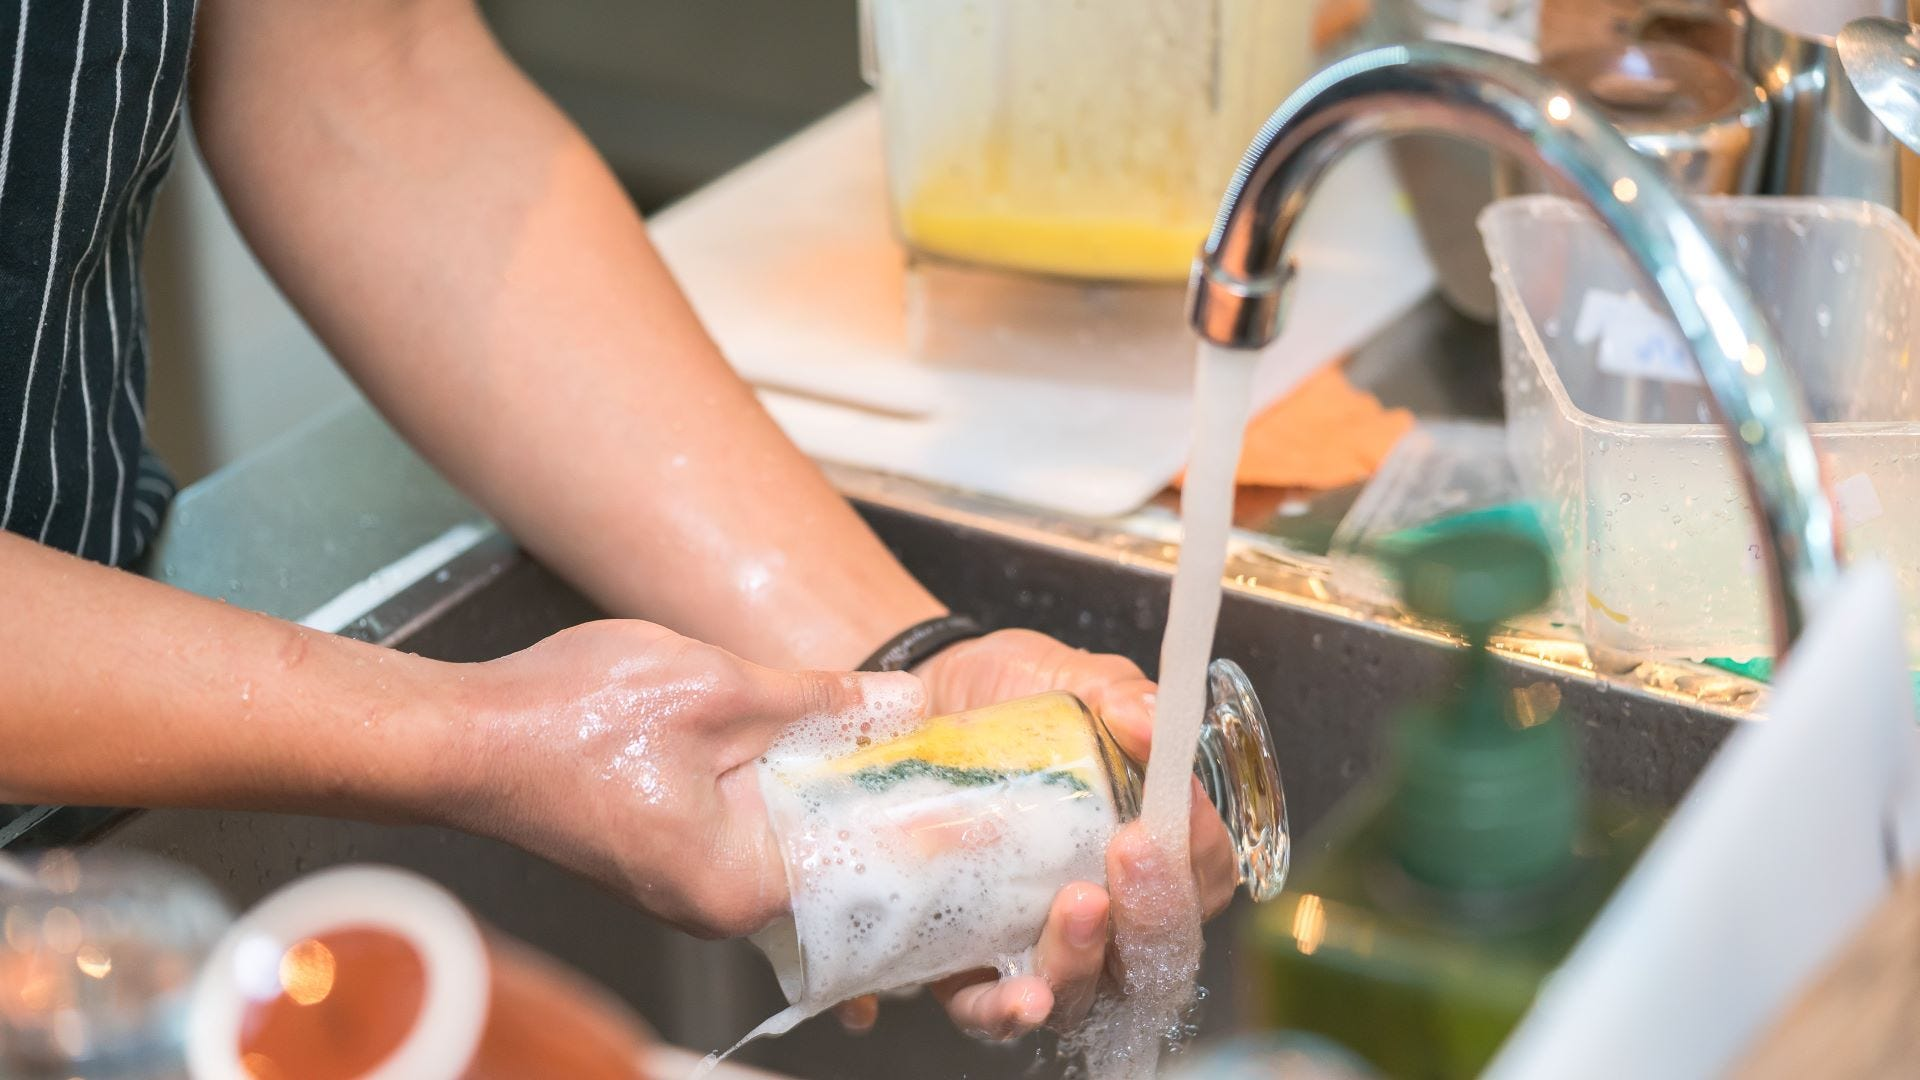 Someone rinsing a glass under a kitchen sink faucet.